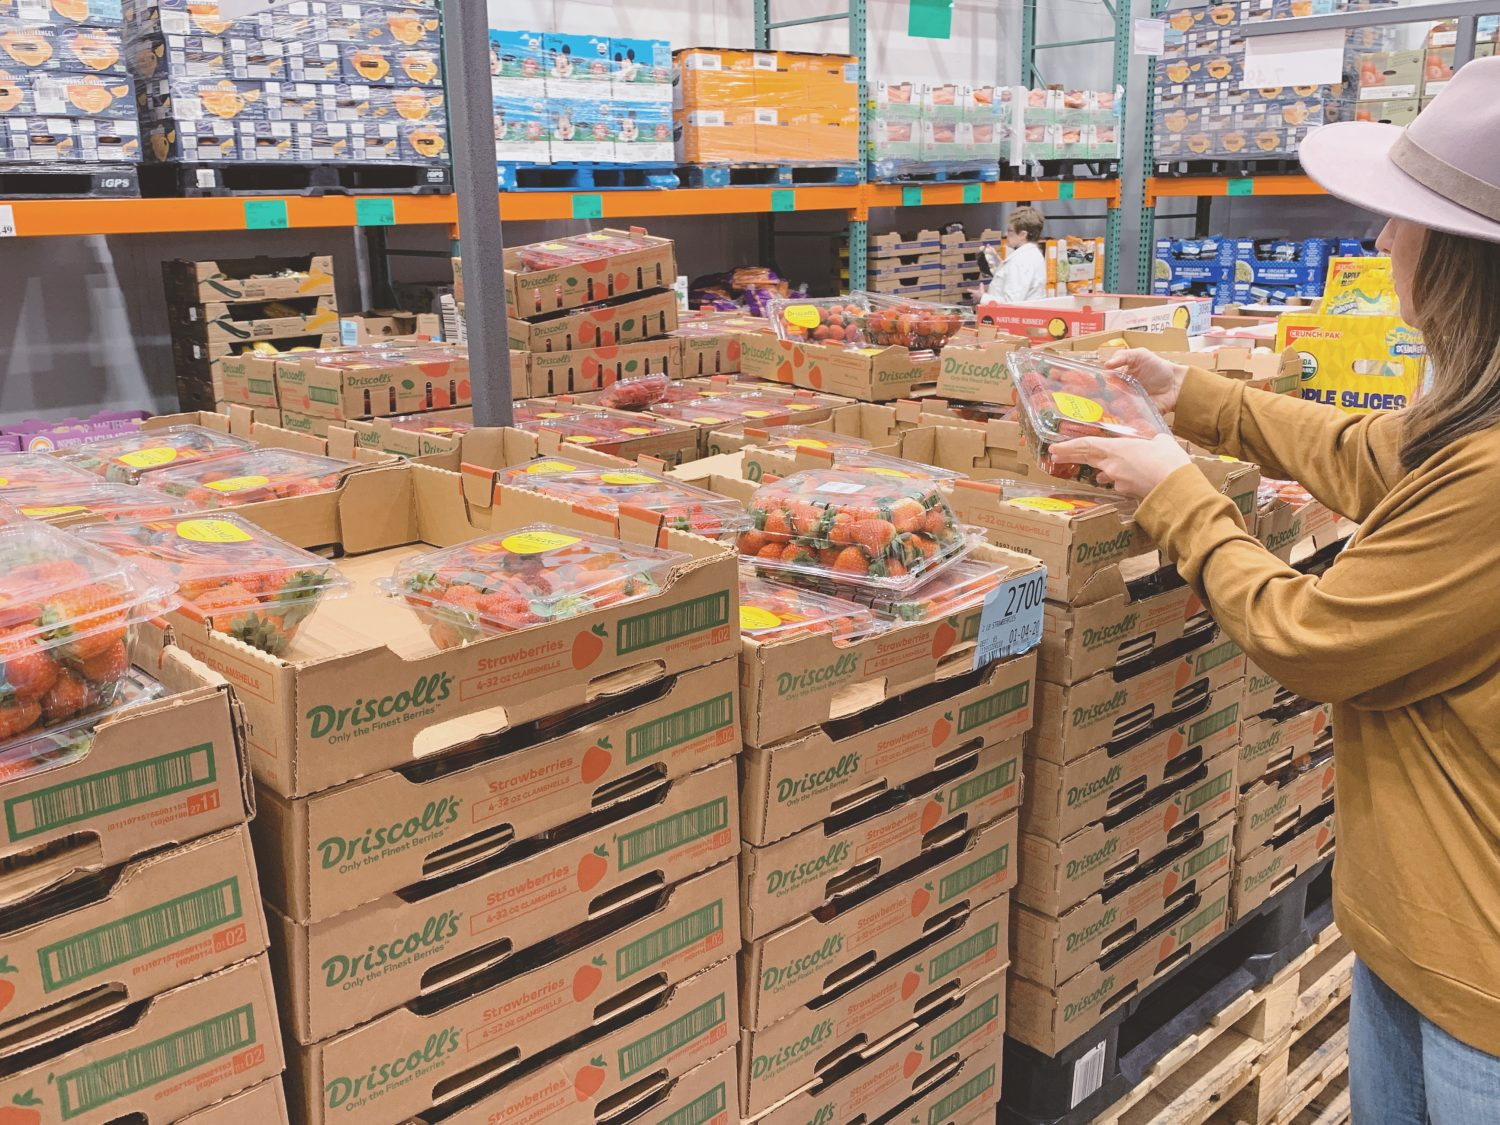 shopping for produce at costco